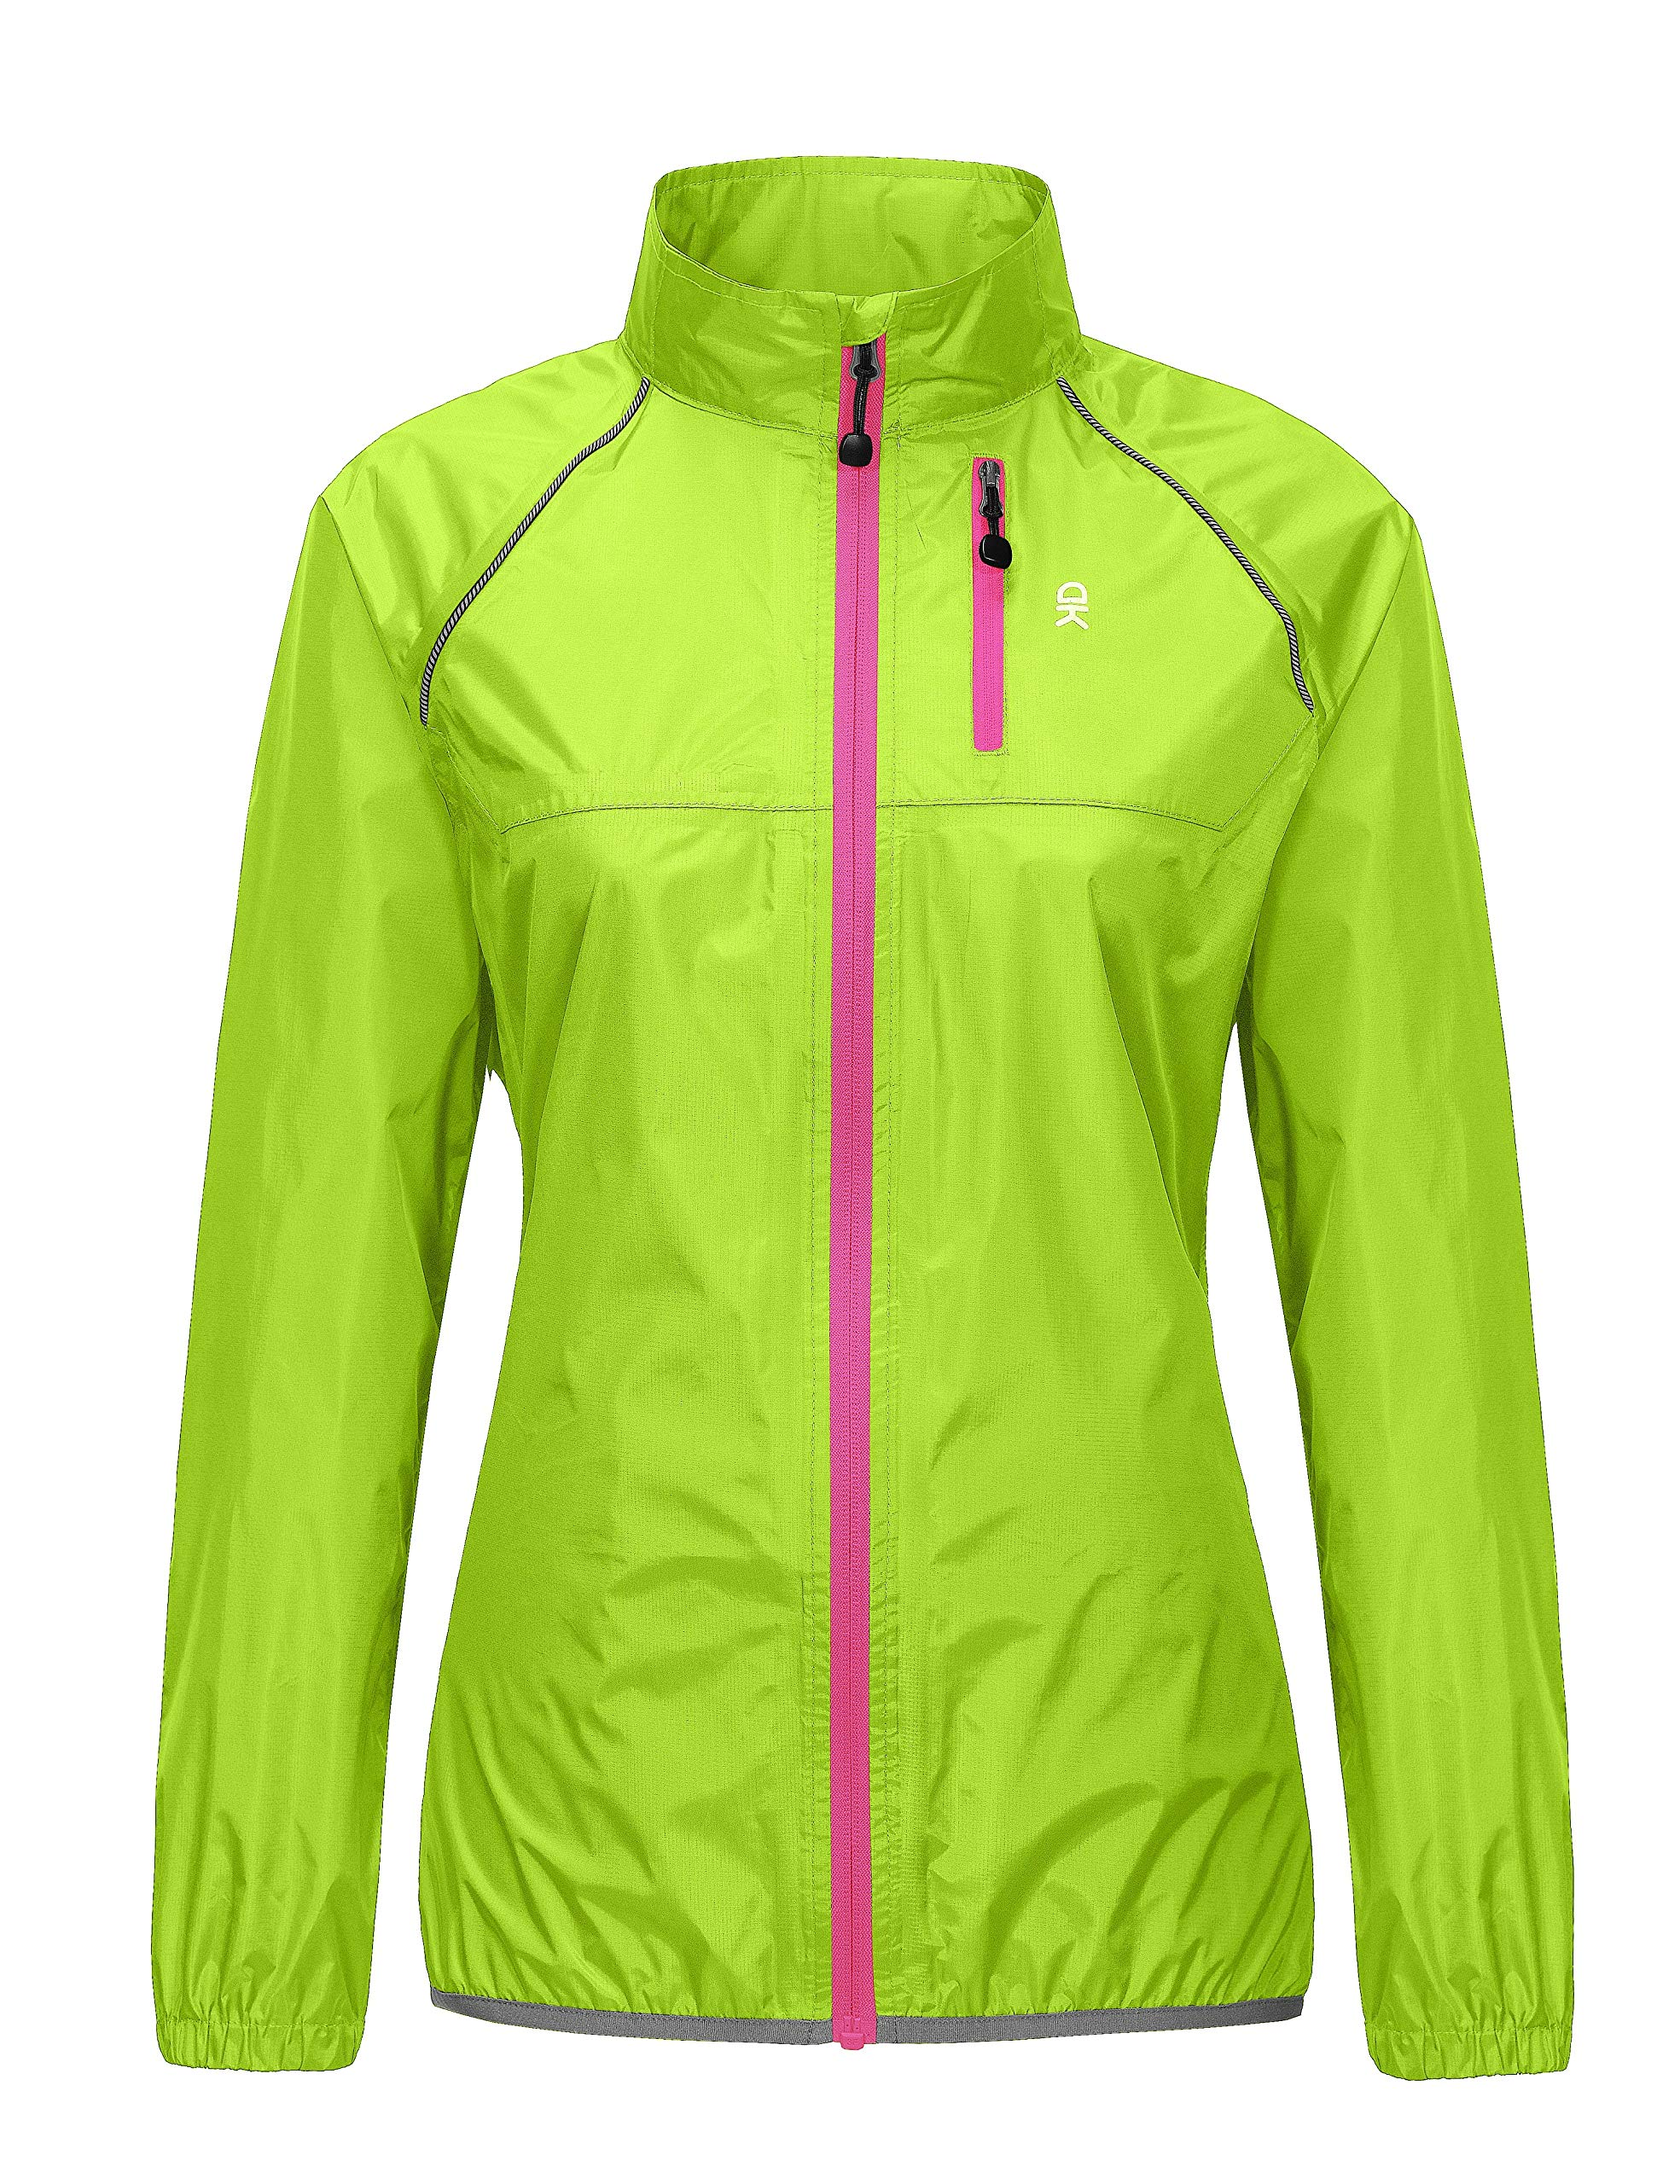 Little Donkey Andy Women's Waterproof Cycling Bike Jacket, Running Rain Jacket, Windbreaker, Ultralight and Packable Hi-Viz Yellow XS by Little Donkey Andy